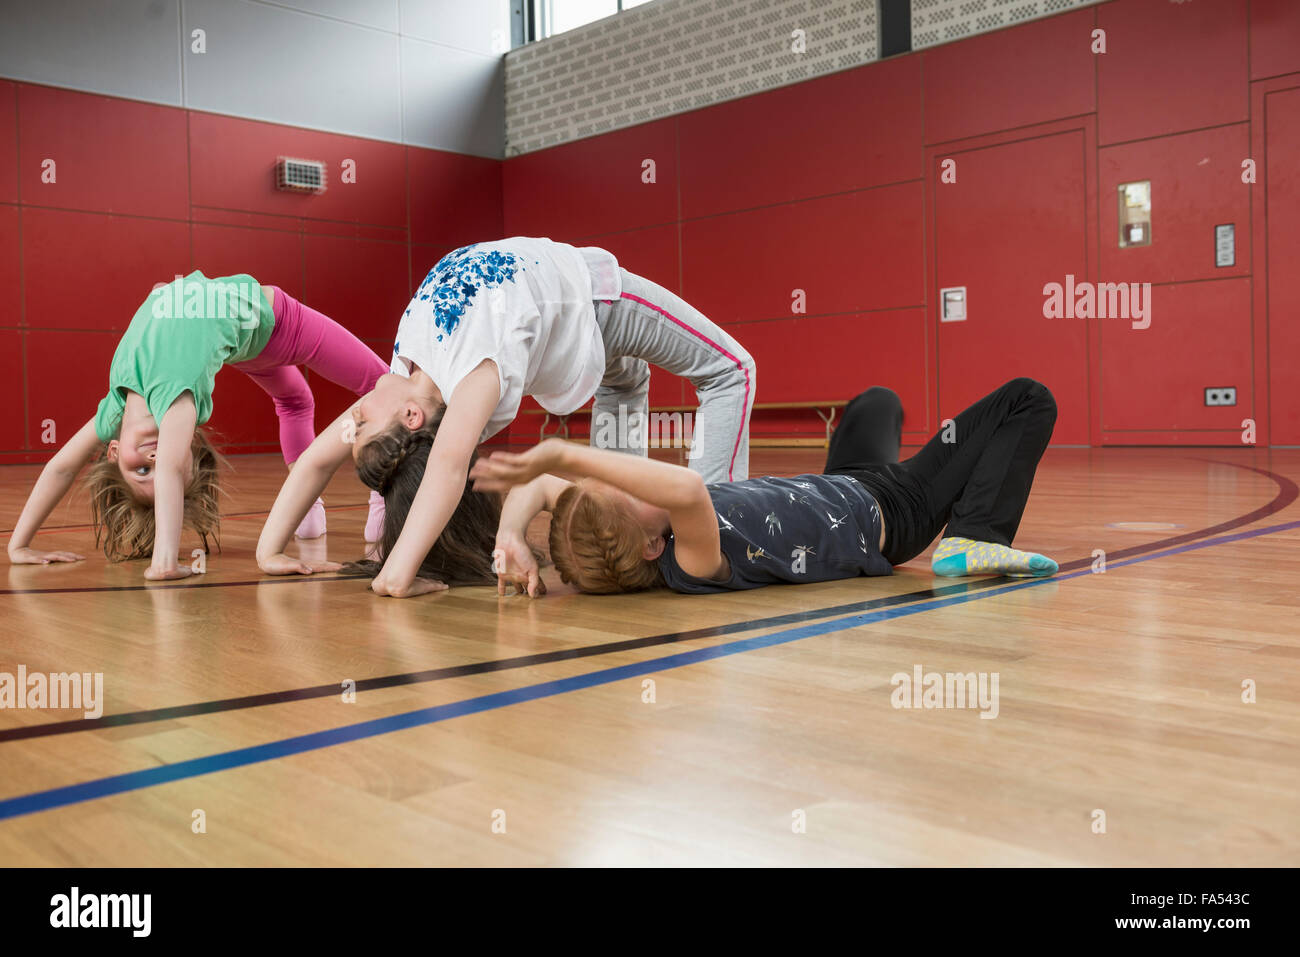 Girls doing bridge position yoga in sports hall, Munich, Bavaria, Germany - Stock Image